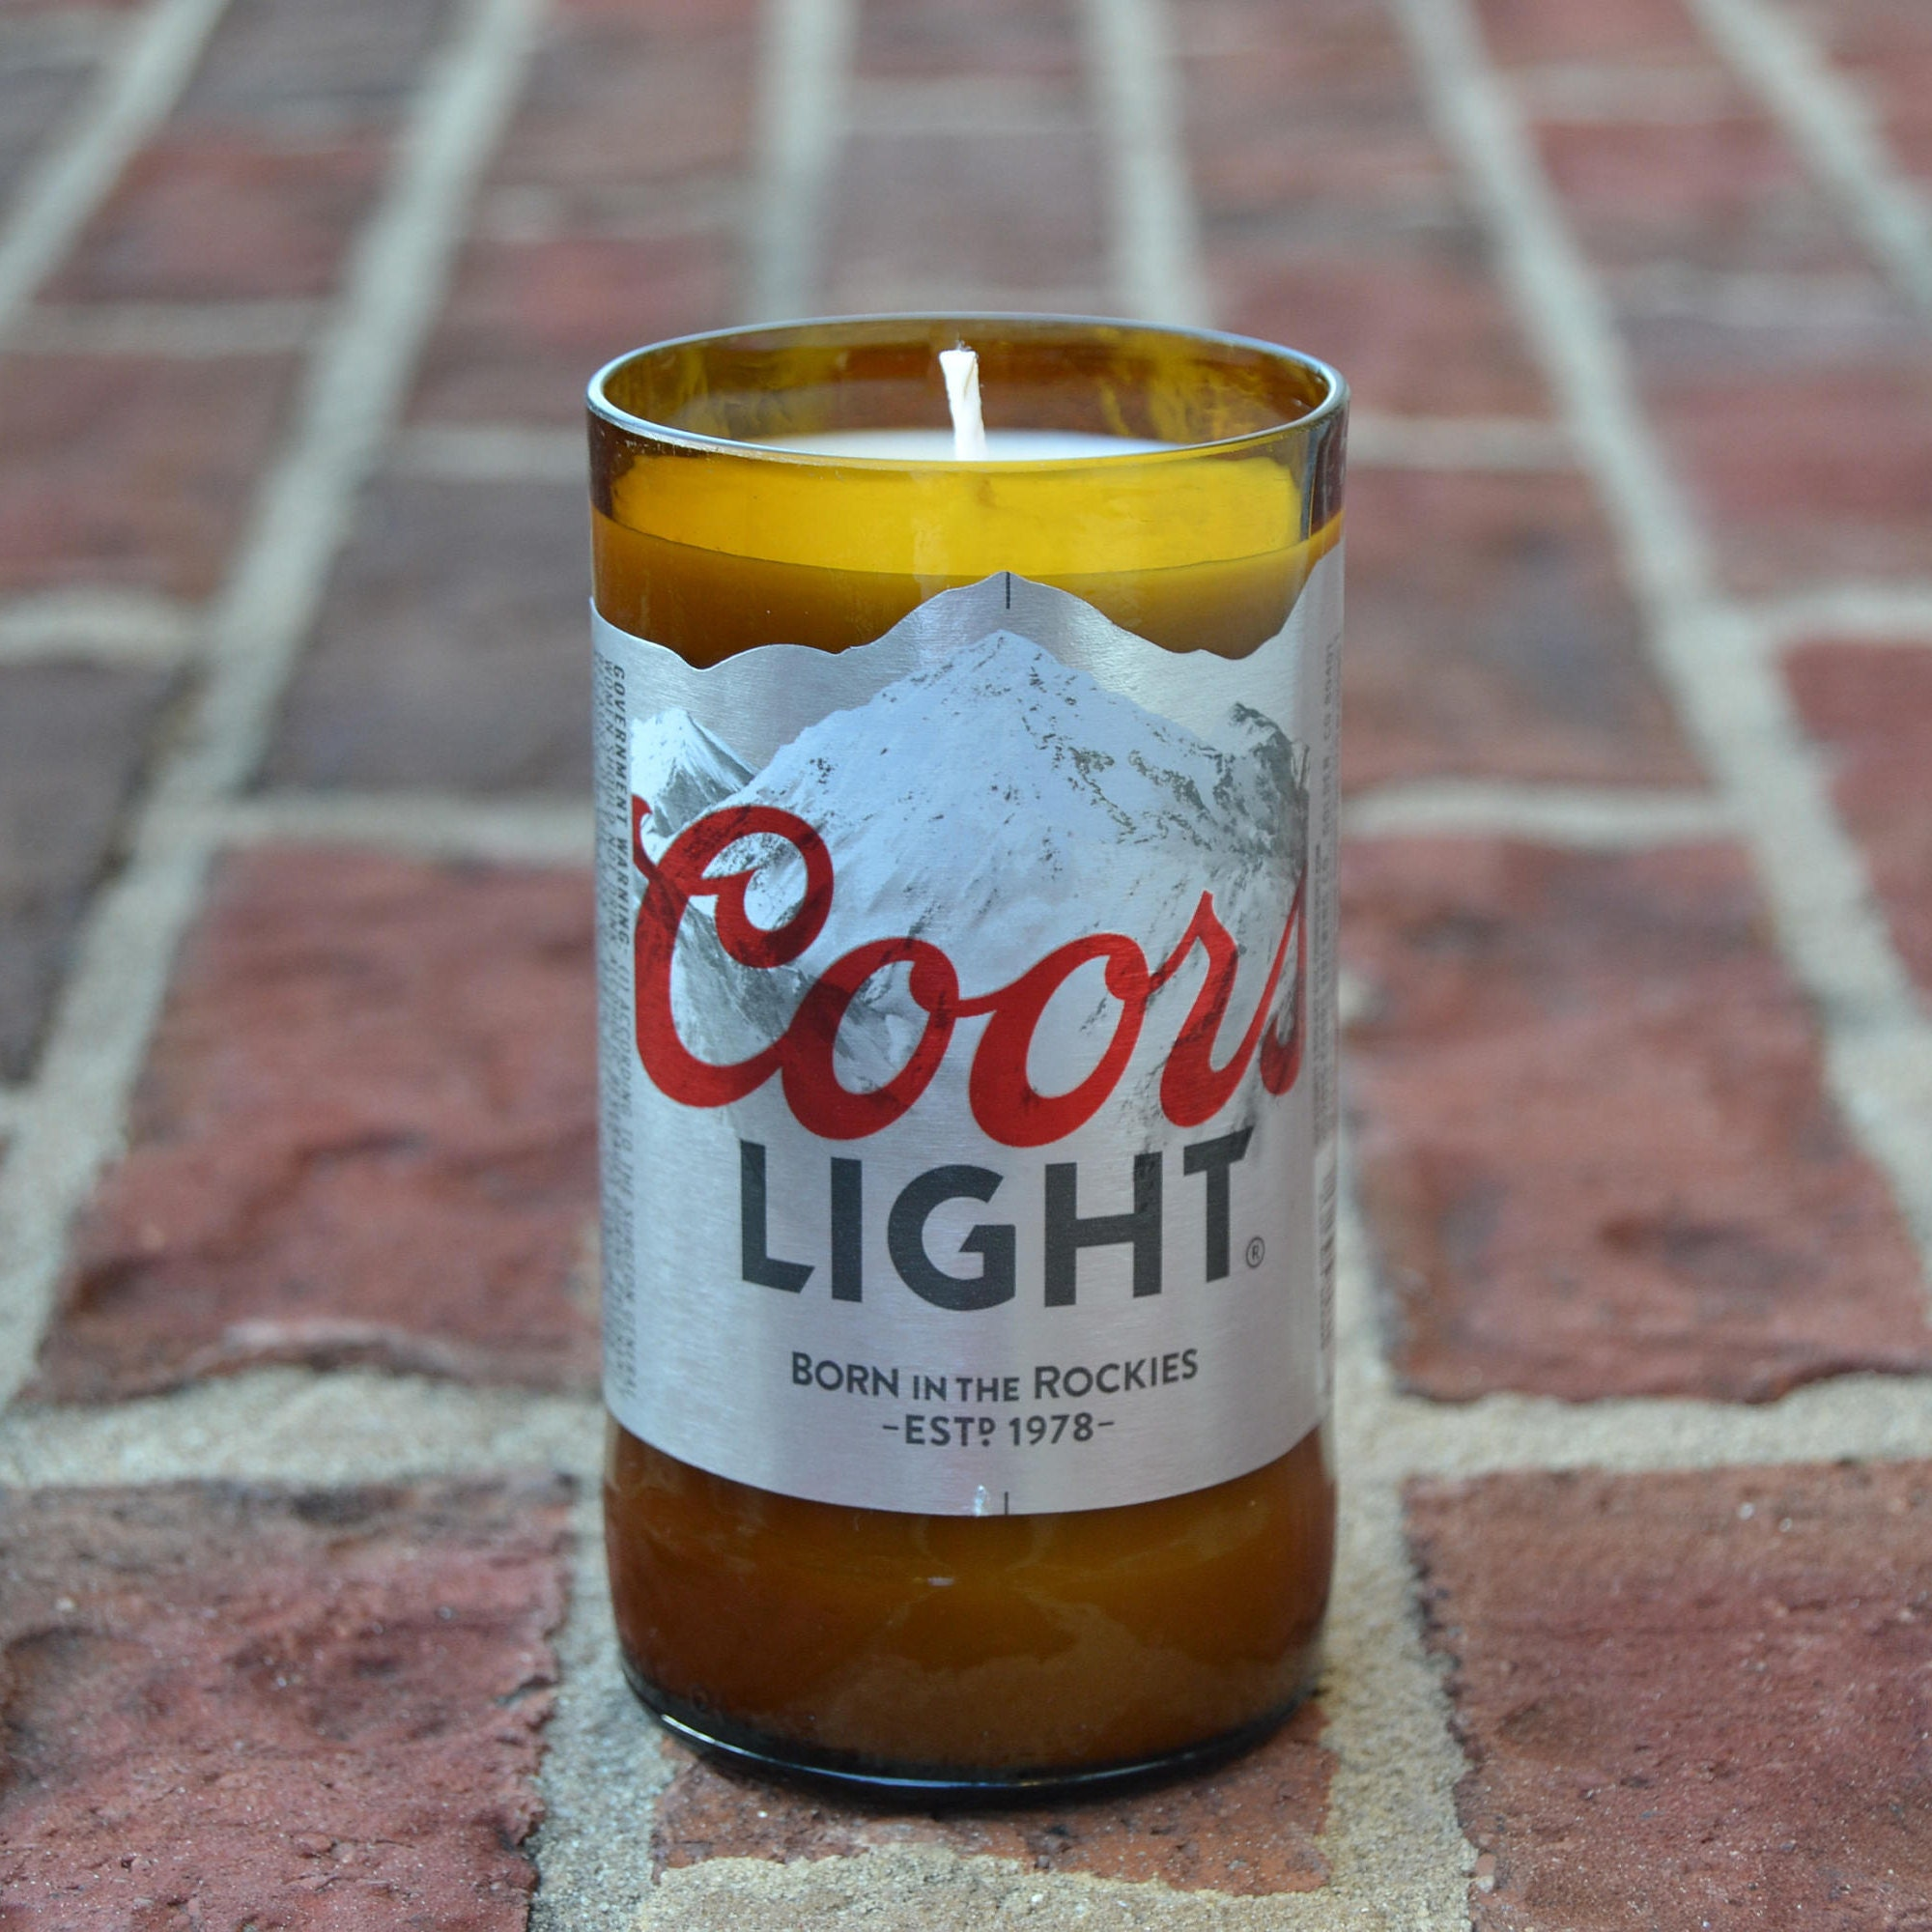 Where Is Coors Light Beer Made Coors Light Beer Bottle Candle Made With Soy  Wax . Where Is Coors Light Beer Made ... Nice Look